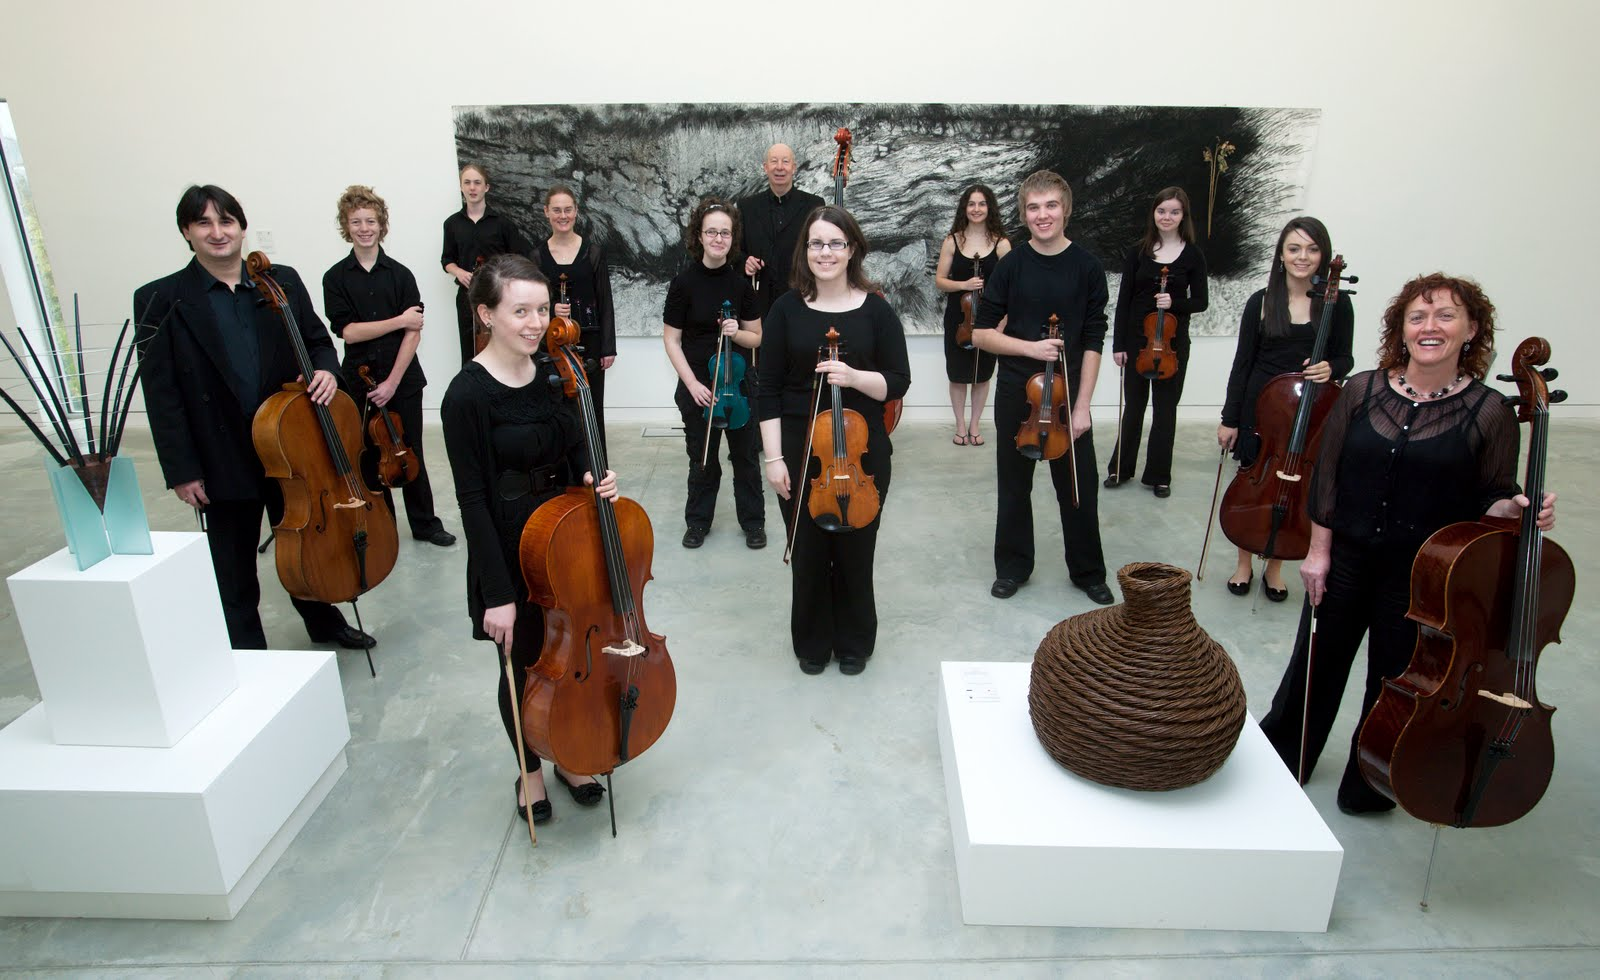 Donegal Chamber Music Society